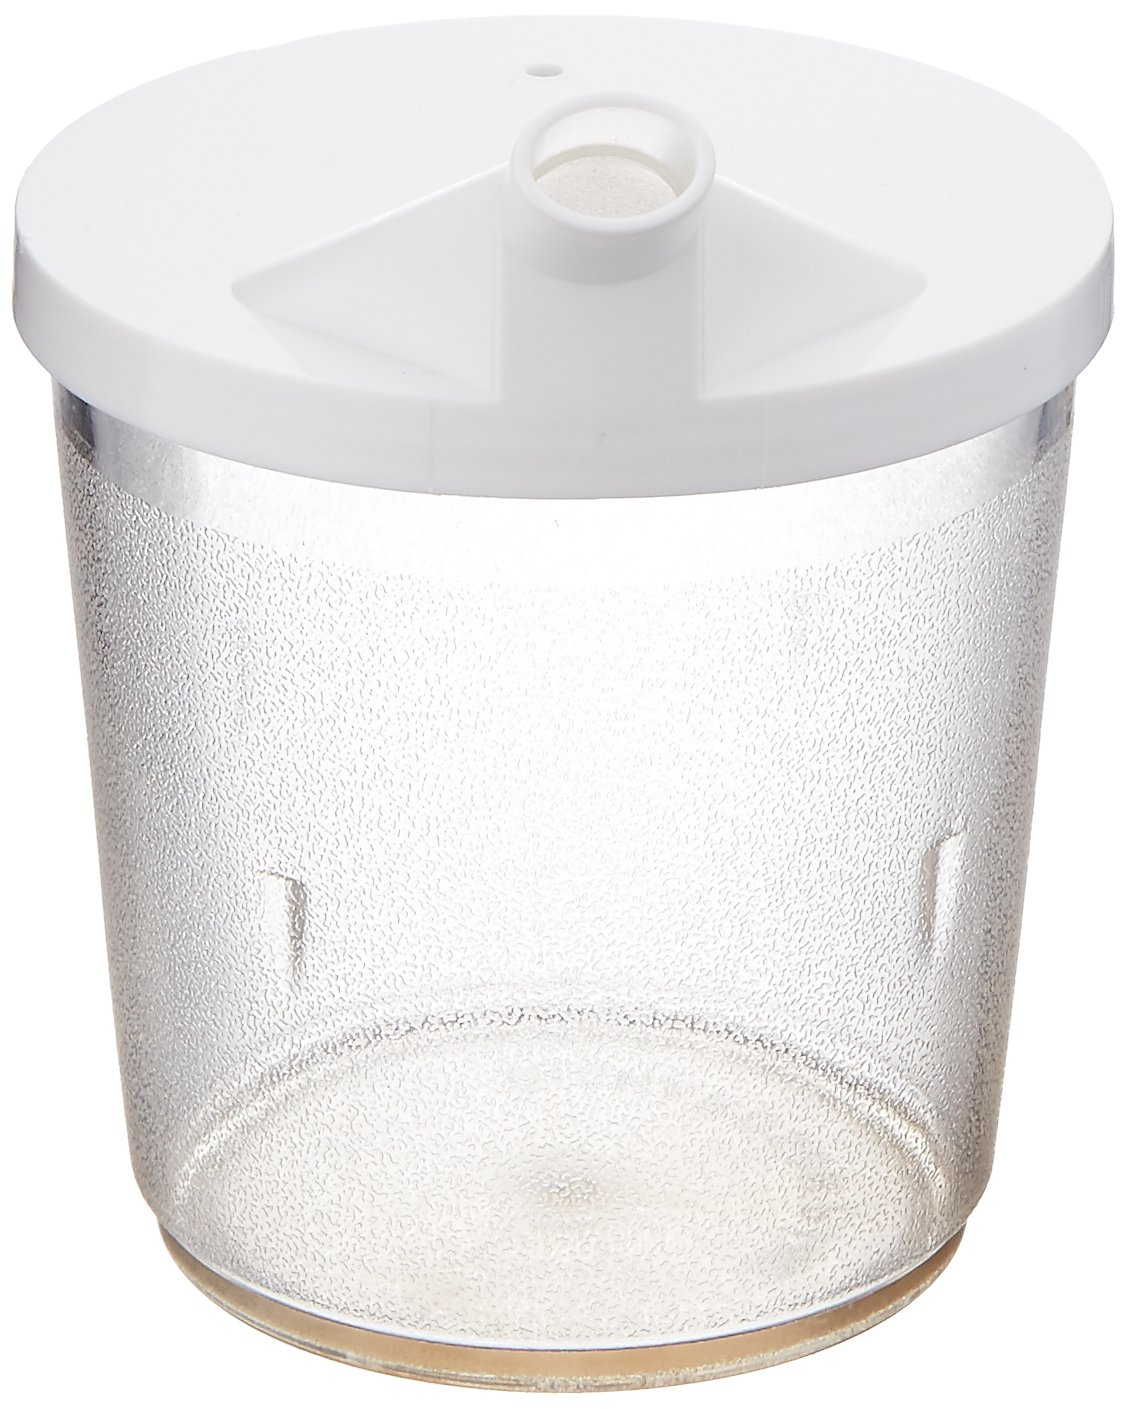 Sammons Preston Clear Cup with Snorkel Lid, 8 Ounces, Portable On-The-Go Drinking Mug for Hot and Cold Beverages, Spouted Lid for Better Liquid Flow